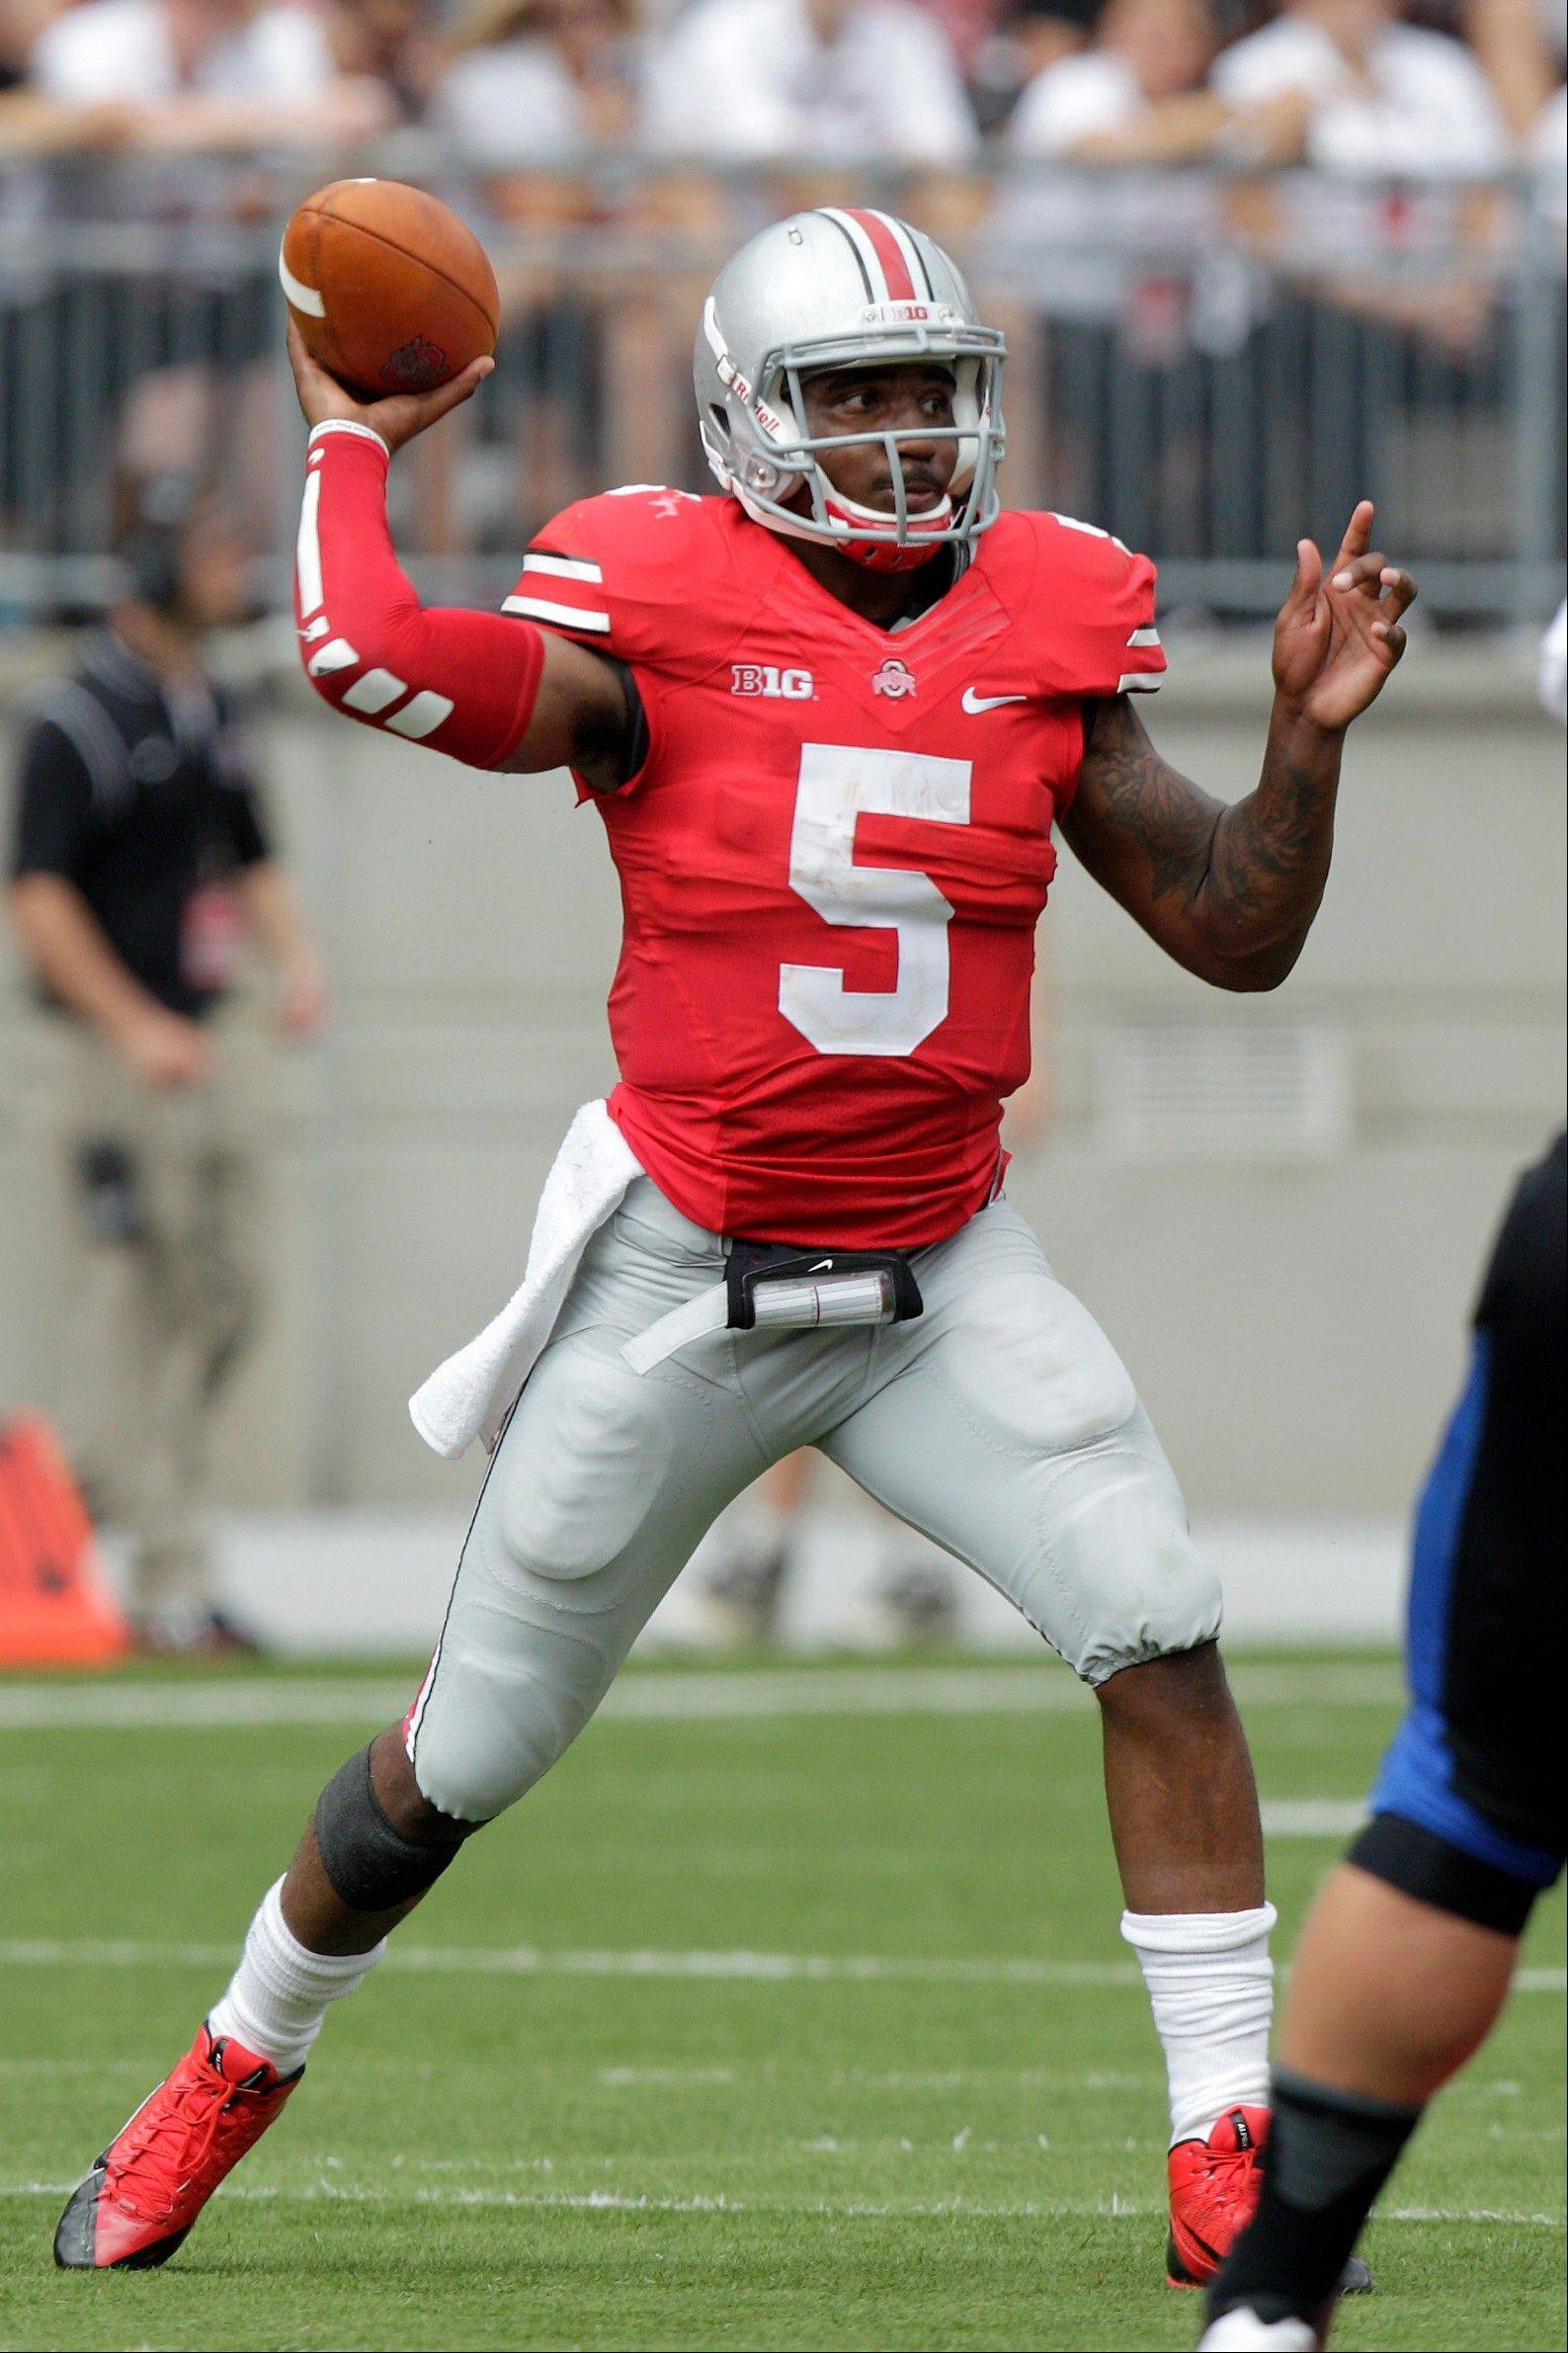 Braxton Miller was the Big Ten�s offensive player of the year in 2012 while leading the Buckeyes to a 12-0 record. He went down early in the Buckeyes� second game this season.